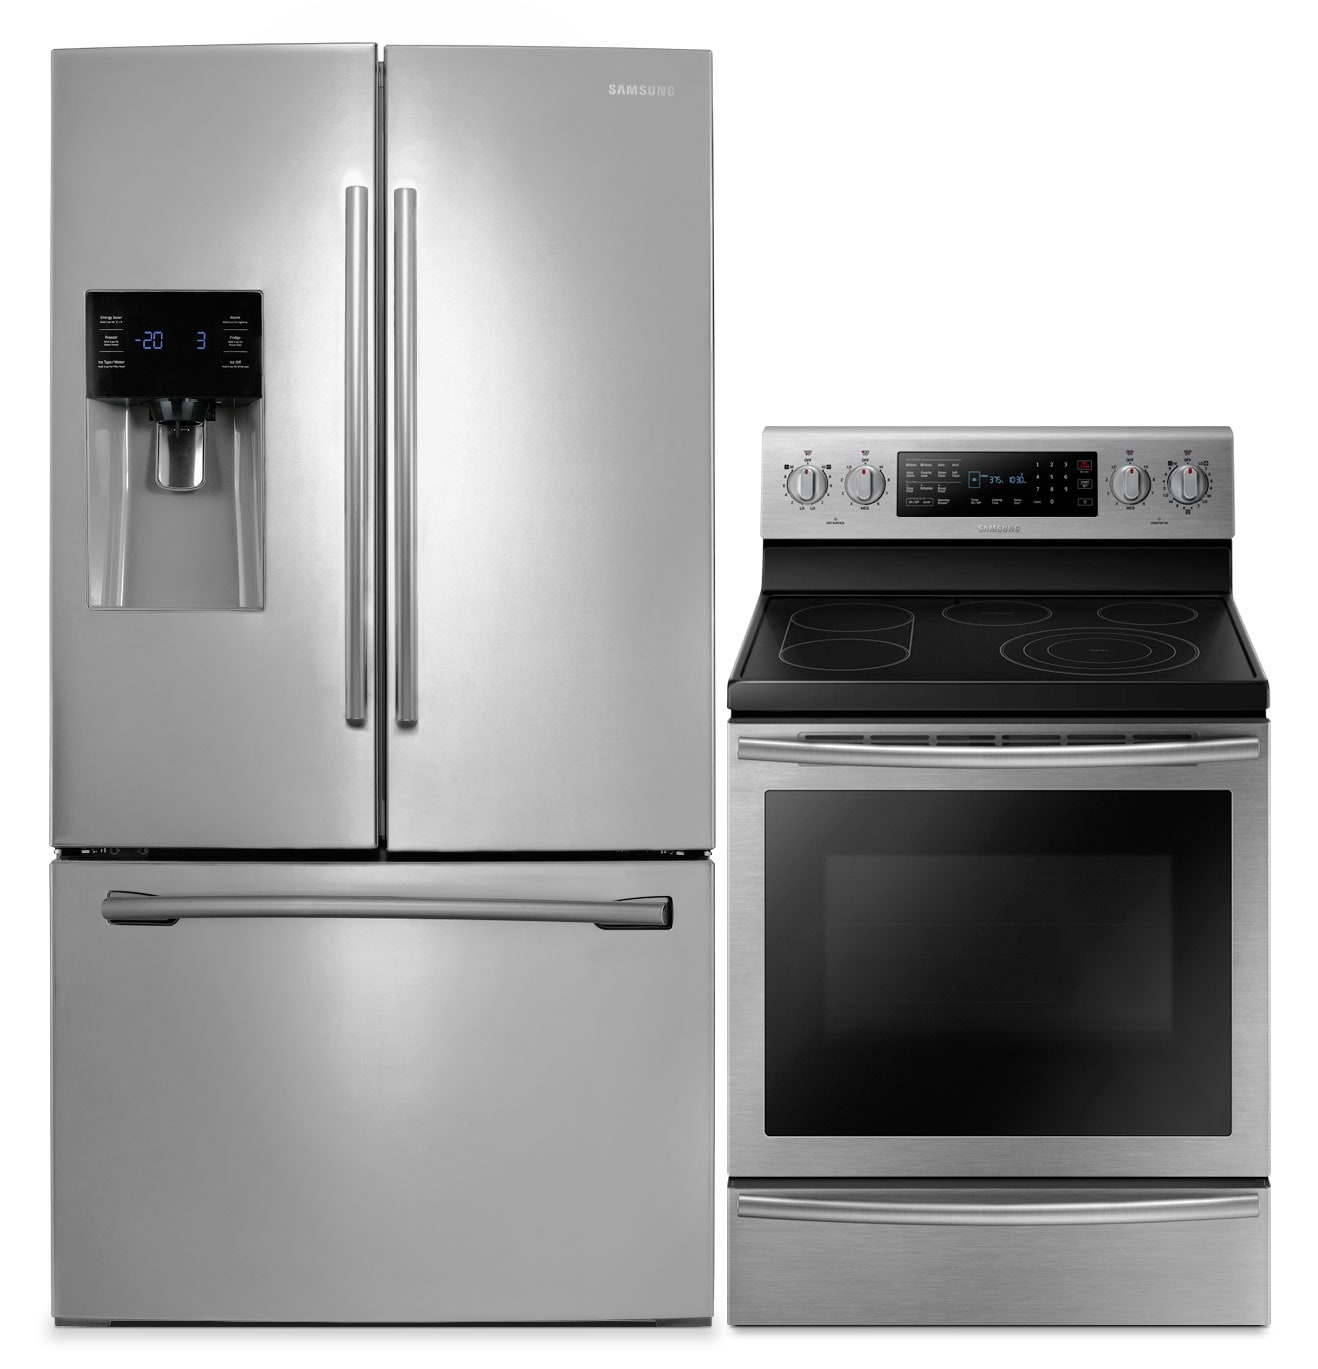 Cooking Products - Samsung 26 Cu. Ft. French-Door Refrigerator and 5.9 Cu. Ft. Electric Range – Stainless Steel